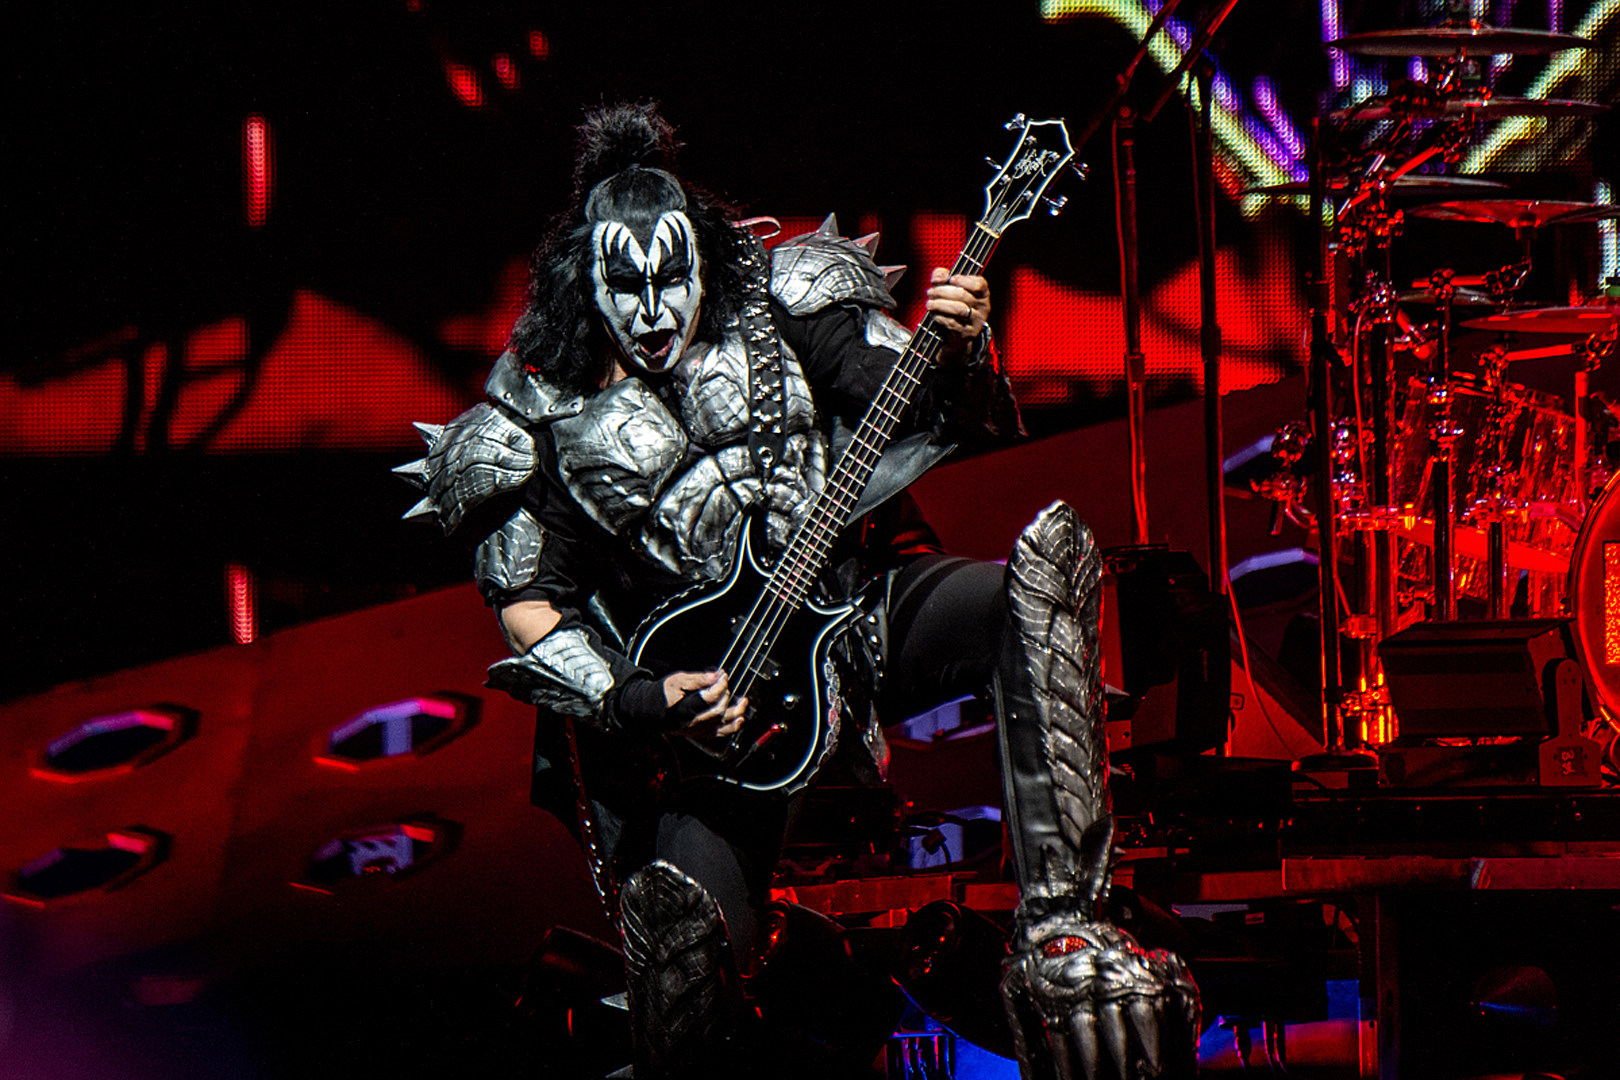 KISS' Gene Simmons Claims Lack of Money Is the Root of All Evil